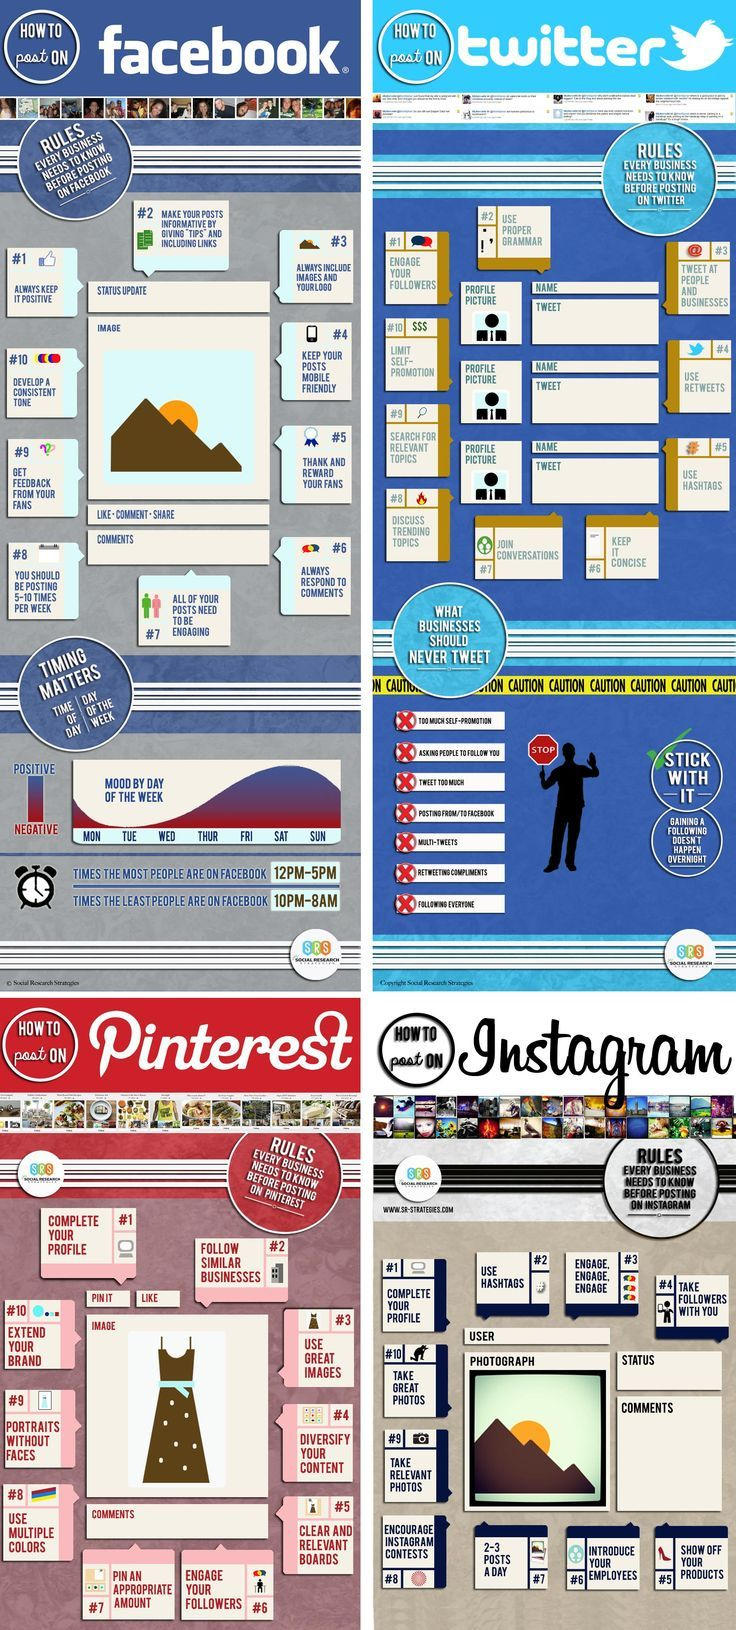 10 Rules That Every Business Needs To Know Before They Post On social media.  #RePin by AT Social Media Marketing - Pinterest Marketing Specialists ATSocialMedia.co.uk